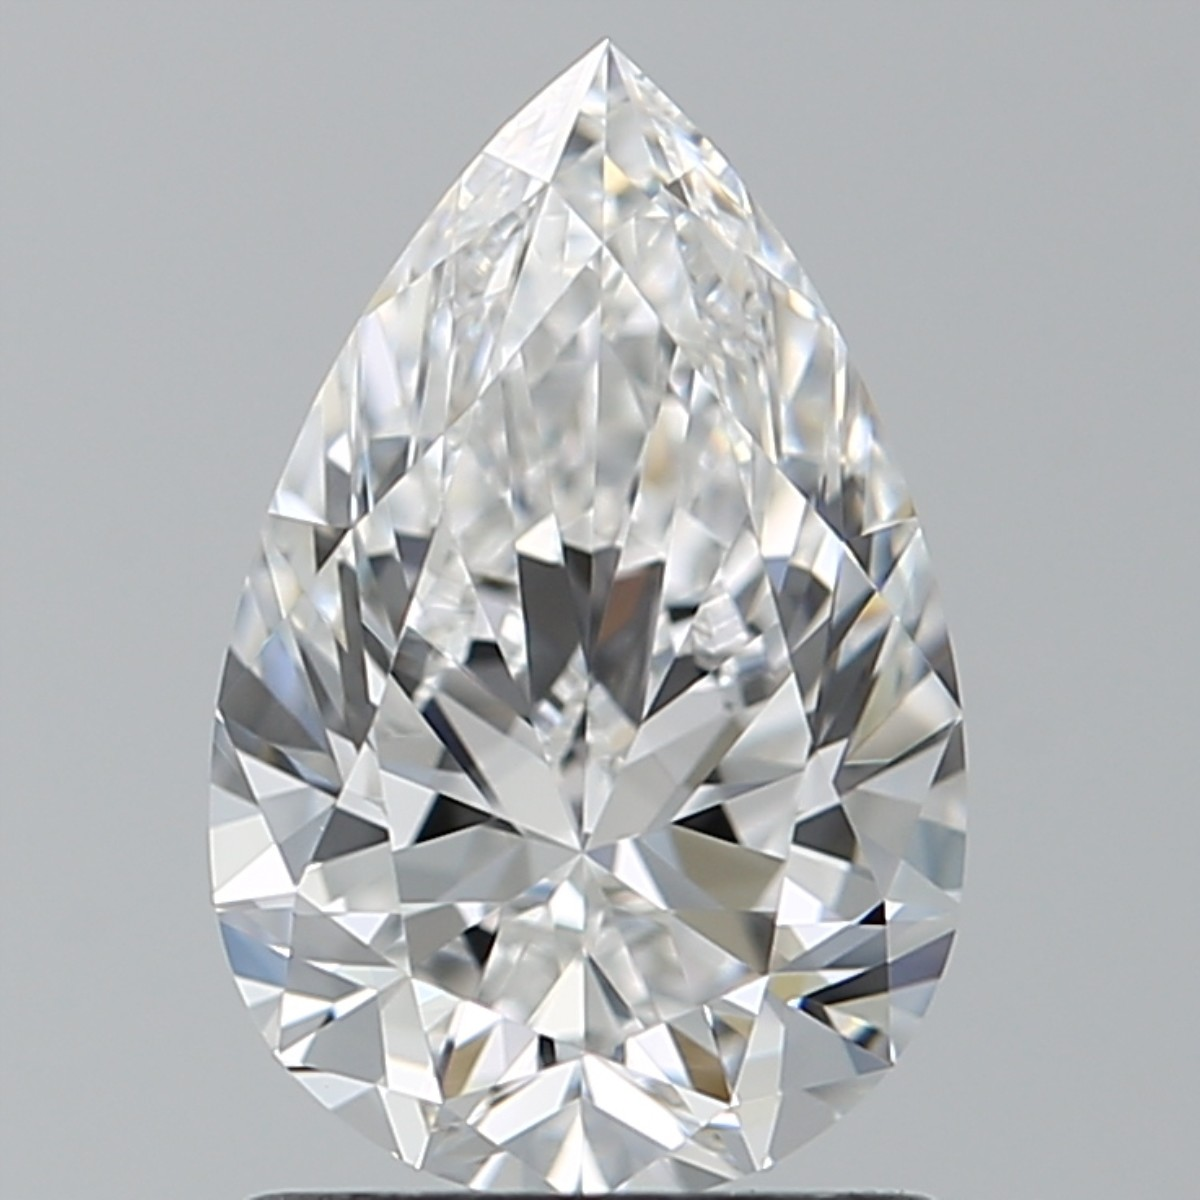 1.26 Carat Pear Diamond (E/IF)